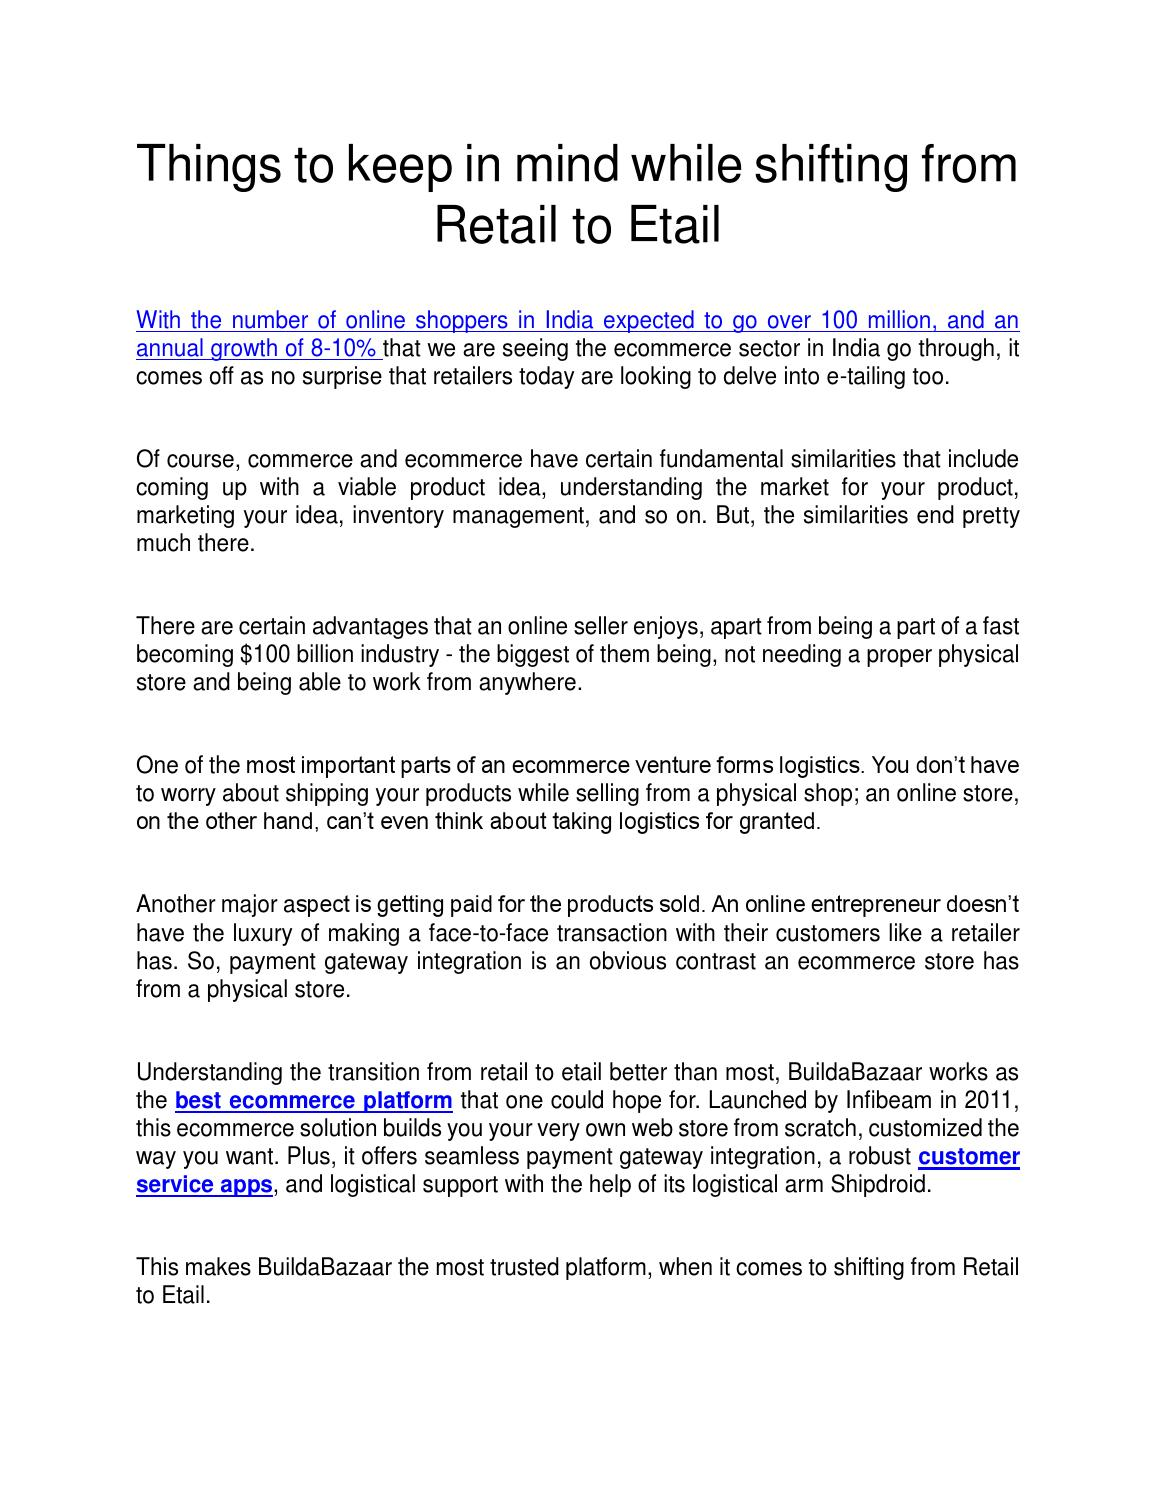 Things to keep in mind while shifting from Retail to Etail